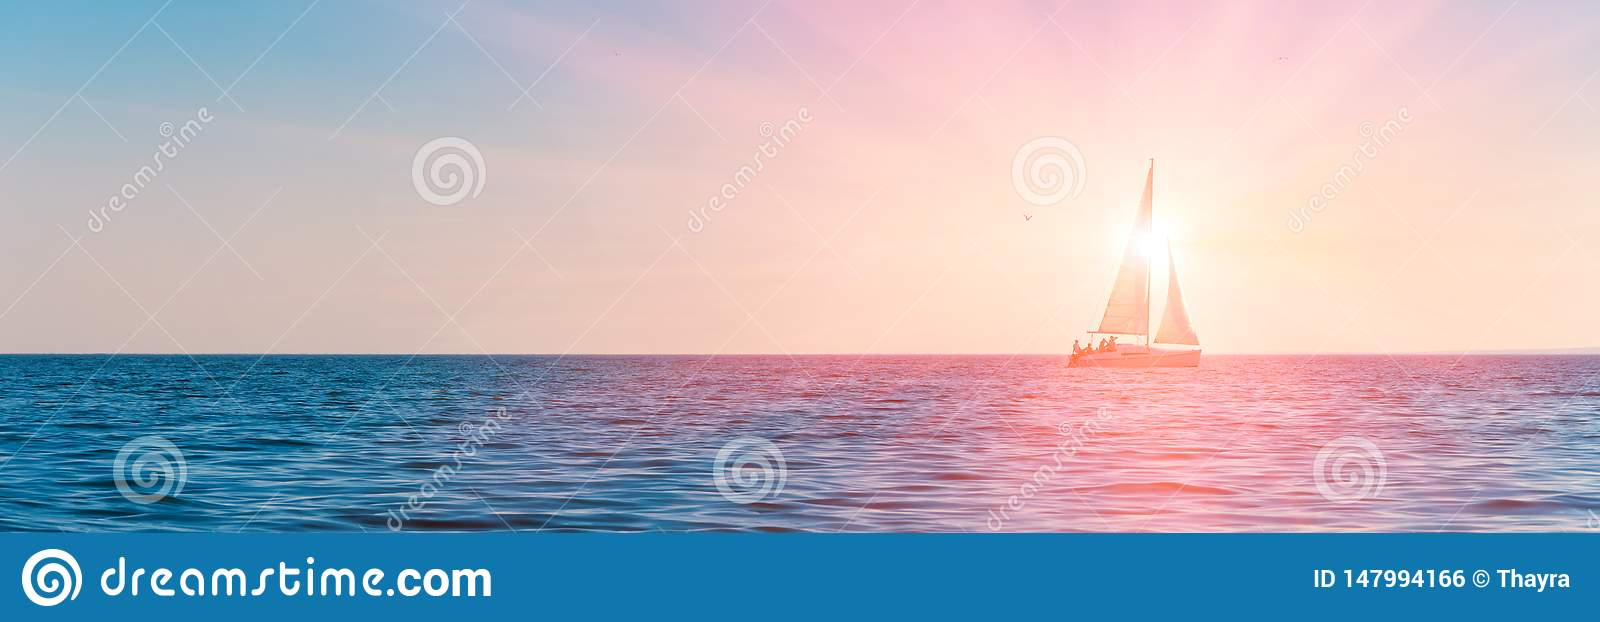 Banner 3:1. Sailboat in the sea in the evening sunlight over sky background. Luxury summer adventure or active vacation concept.